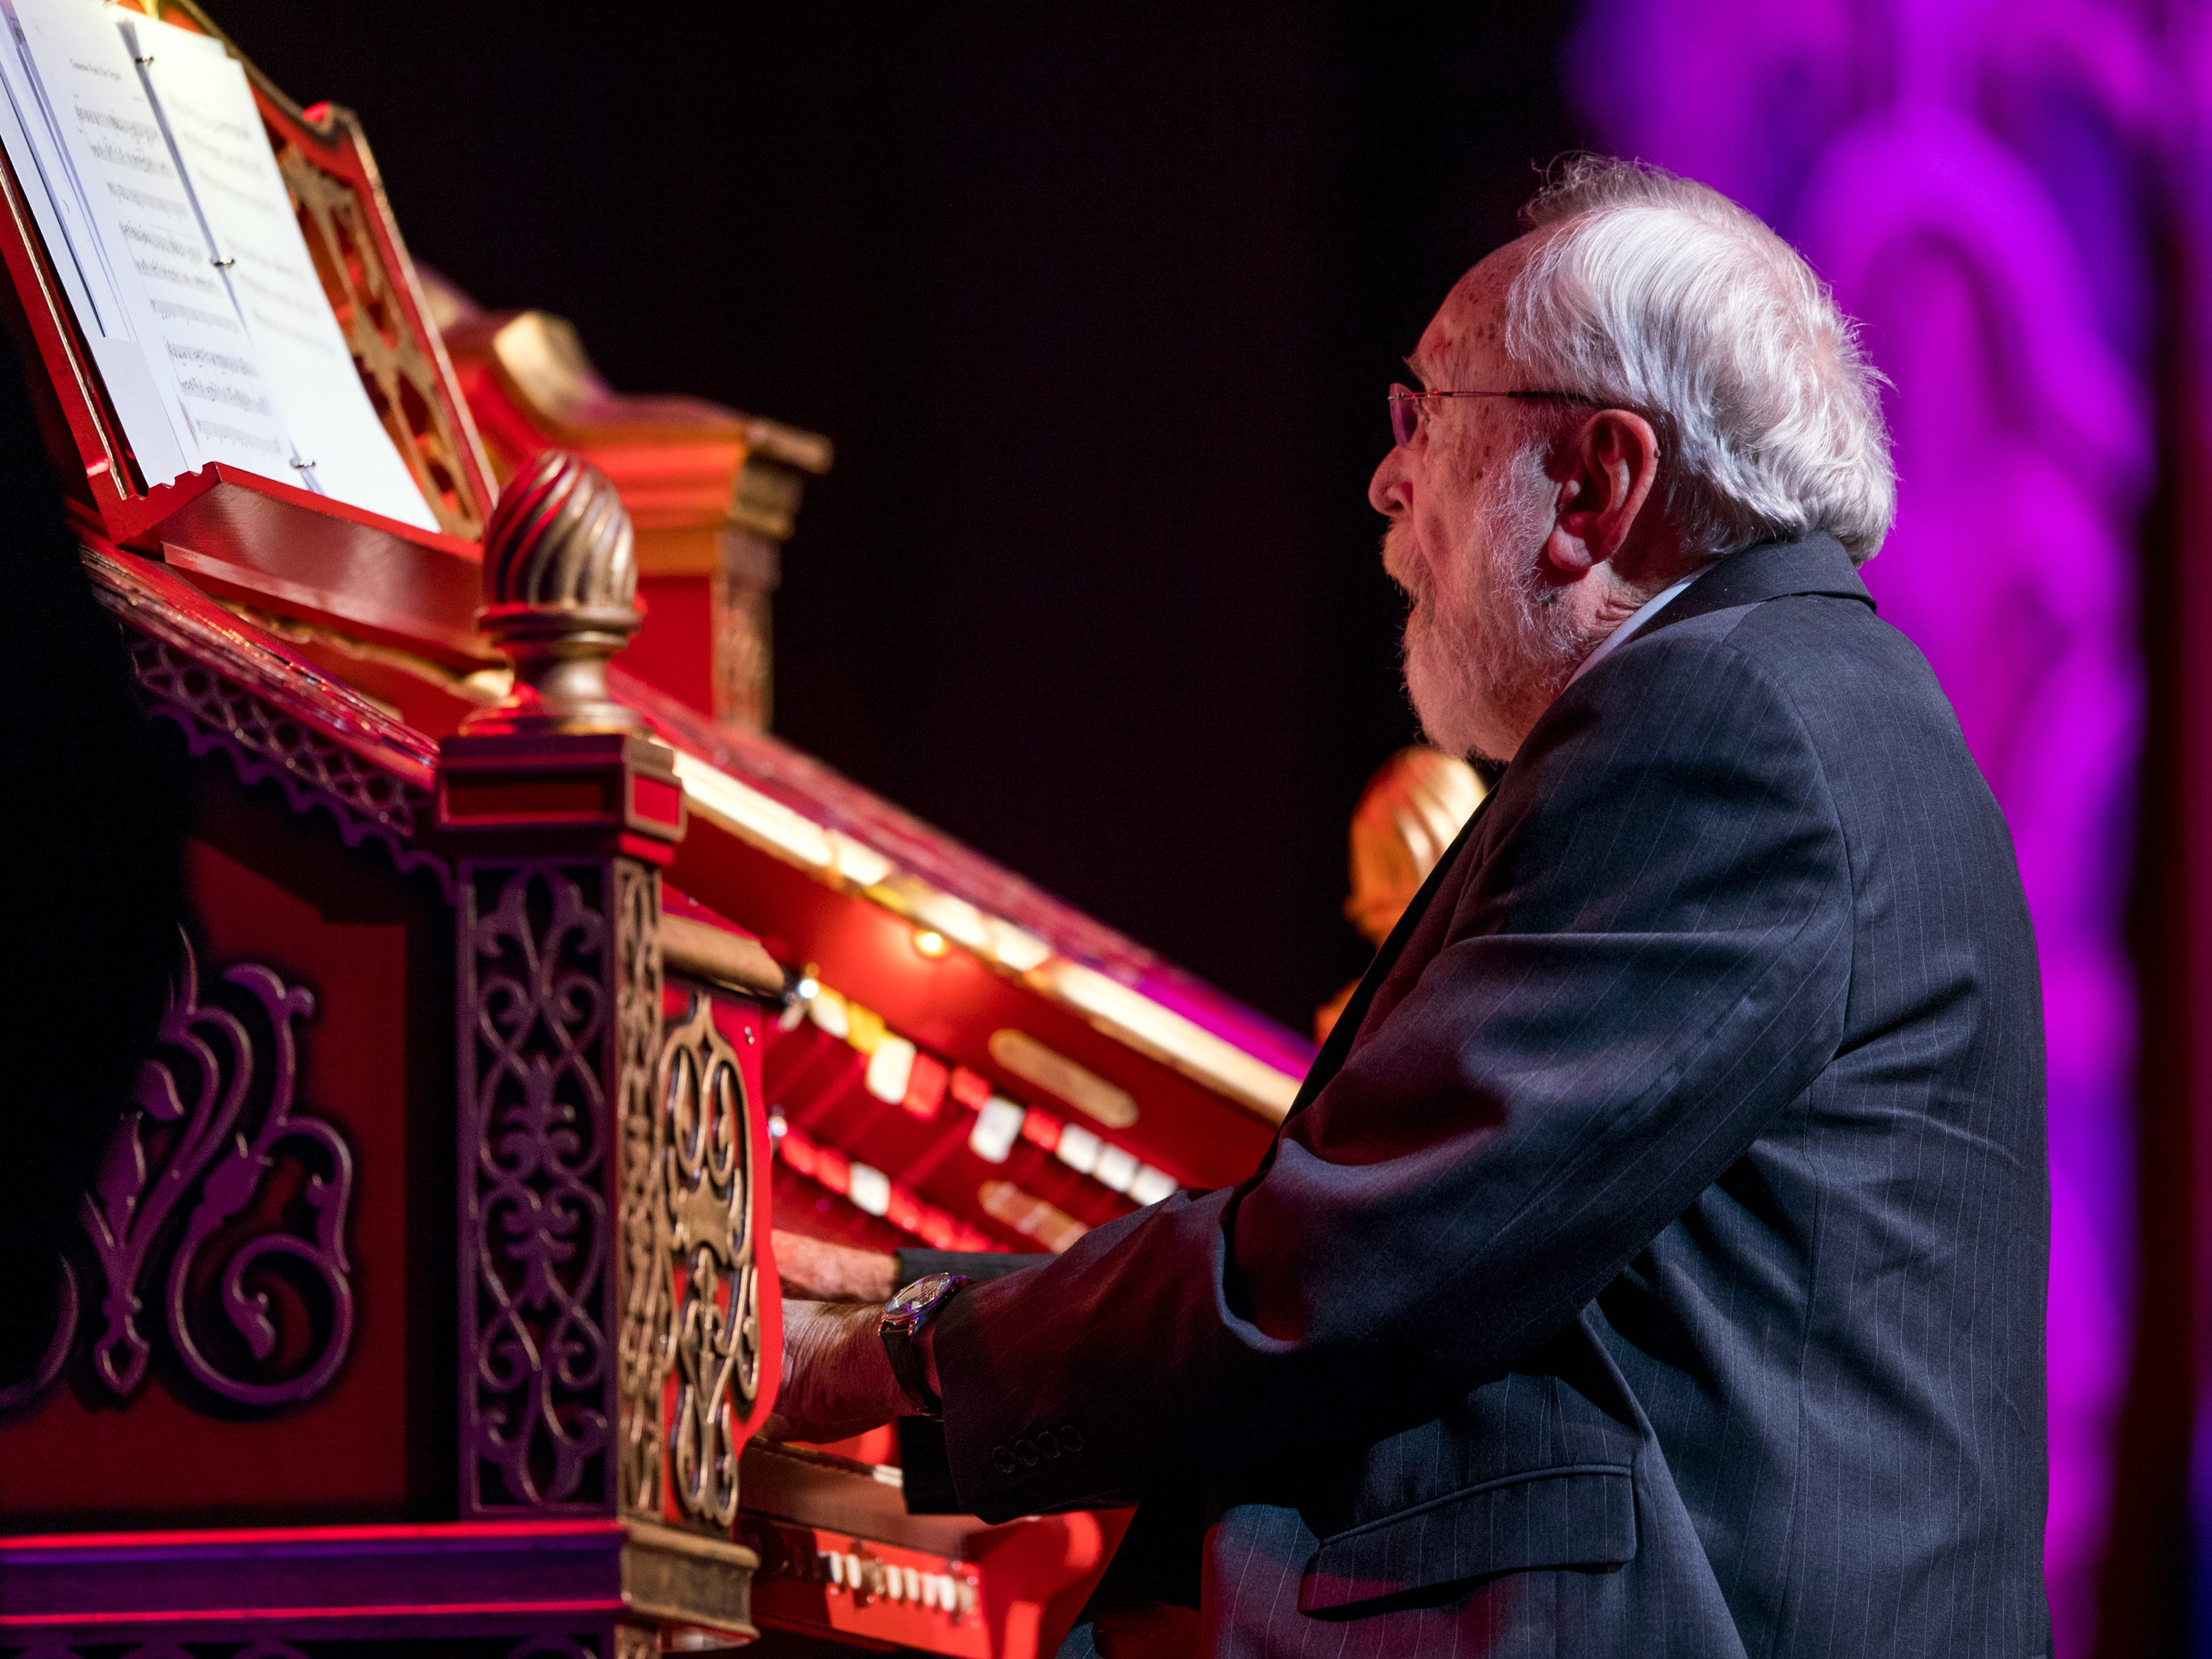 Dr. Bill Snyder plays the Tennessee Waltz on the Mighty Wurlitzer organ for the last time during a special Mighty Musical Monday celebrating Dr. Bill Snyder's retirement at the downtown Knoxville theatre on Monday, October 1, 2018. This particular Mighty Musical Monday also landed on the Tennessee Theatre's 90th anniversary.